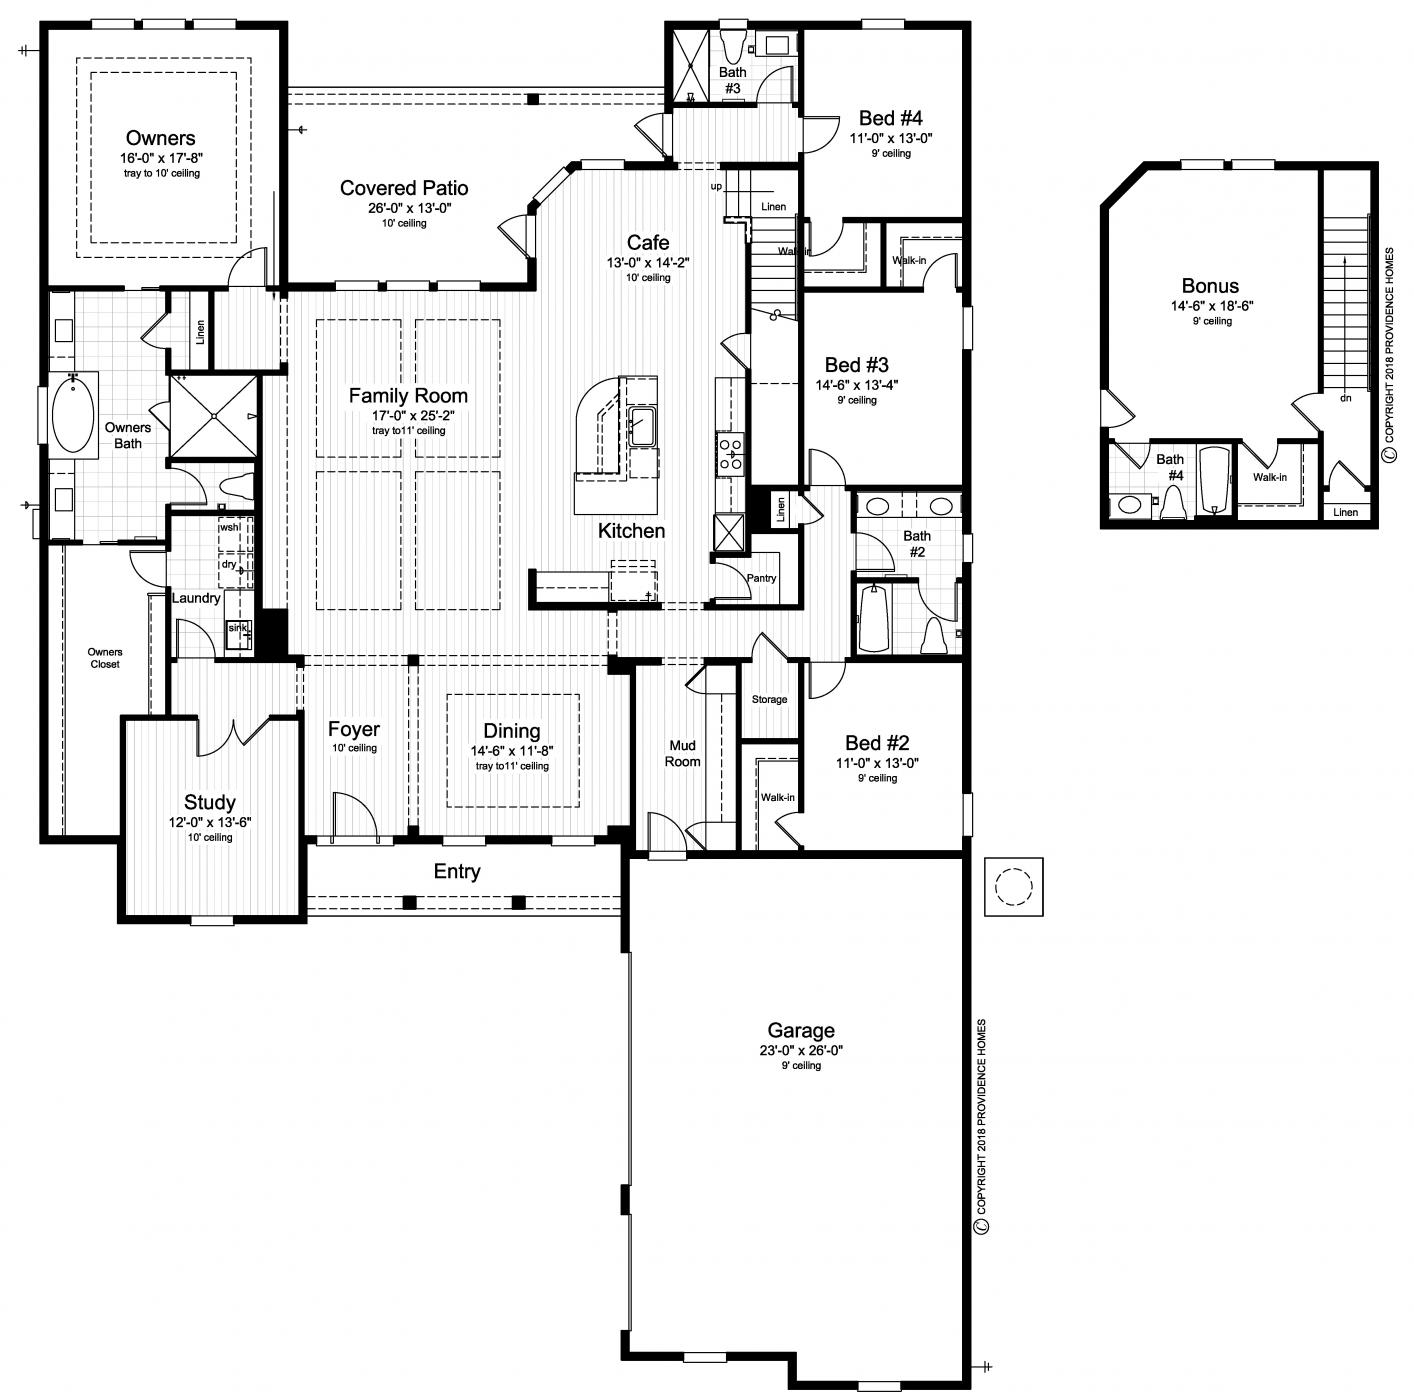 ML147 Floorplan